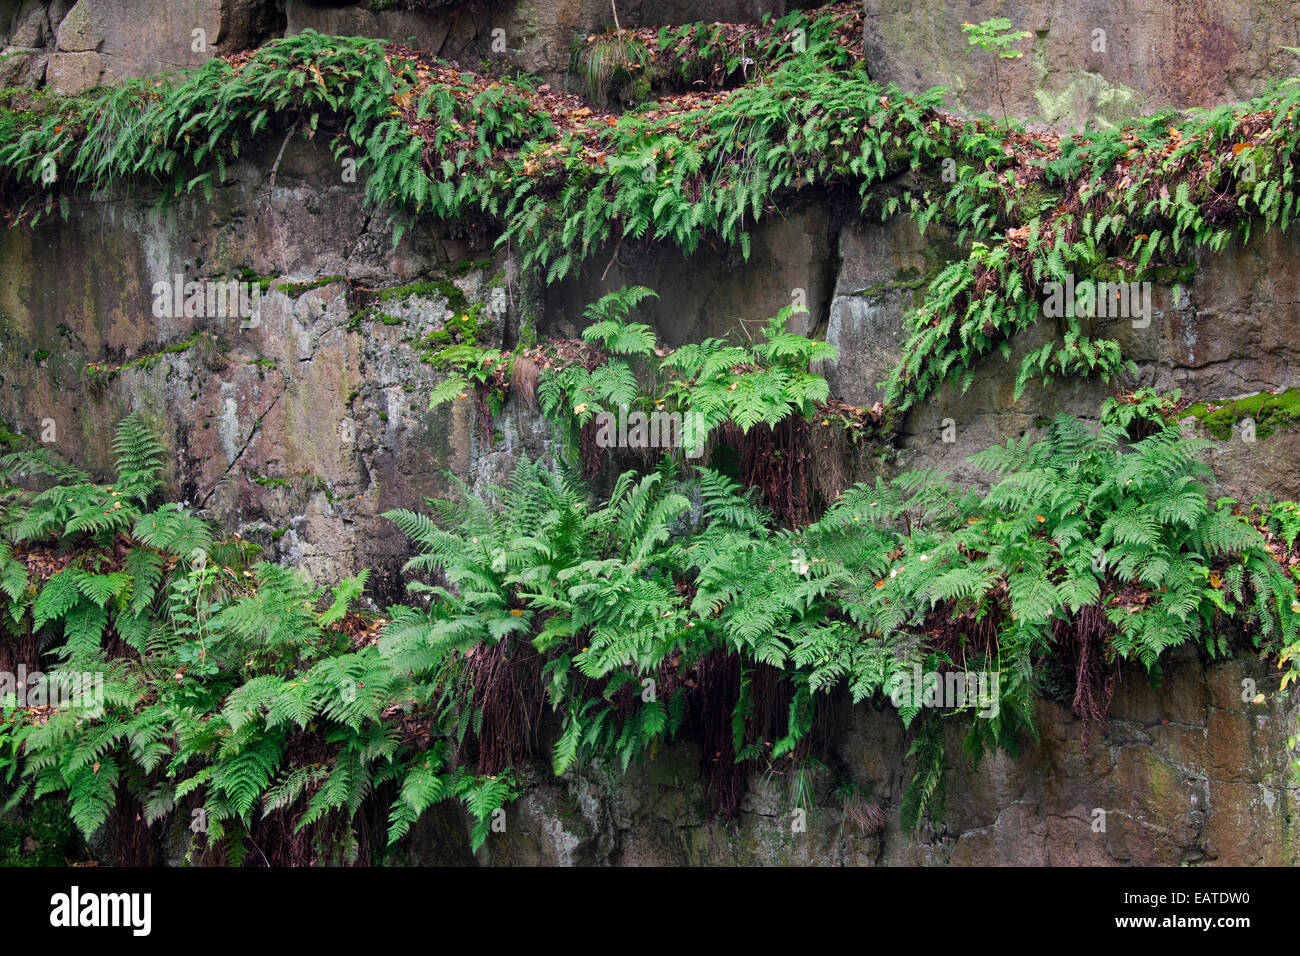 Common bracken / brake / eagle fern (Pteridium aquilinum) growing in rock face - Stock Image